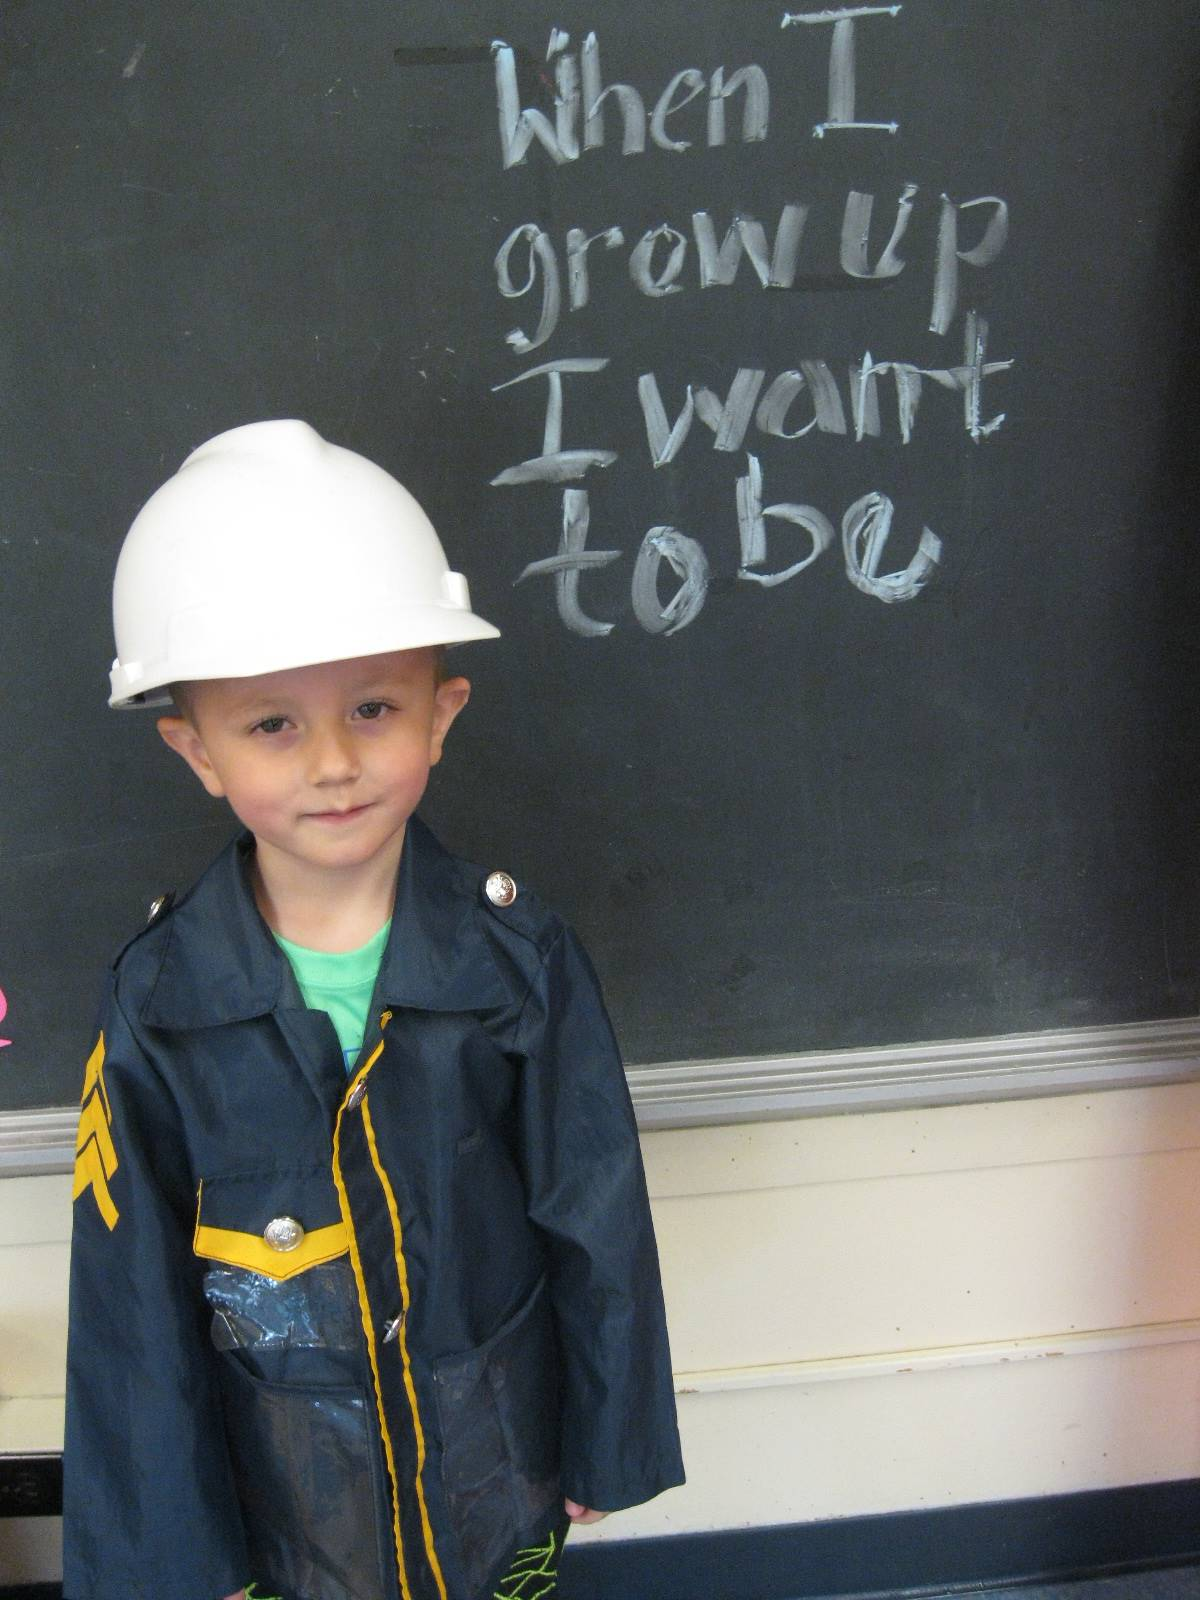 A student dressed up as a Community Helper